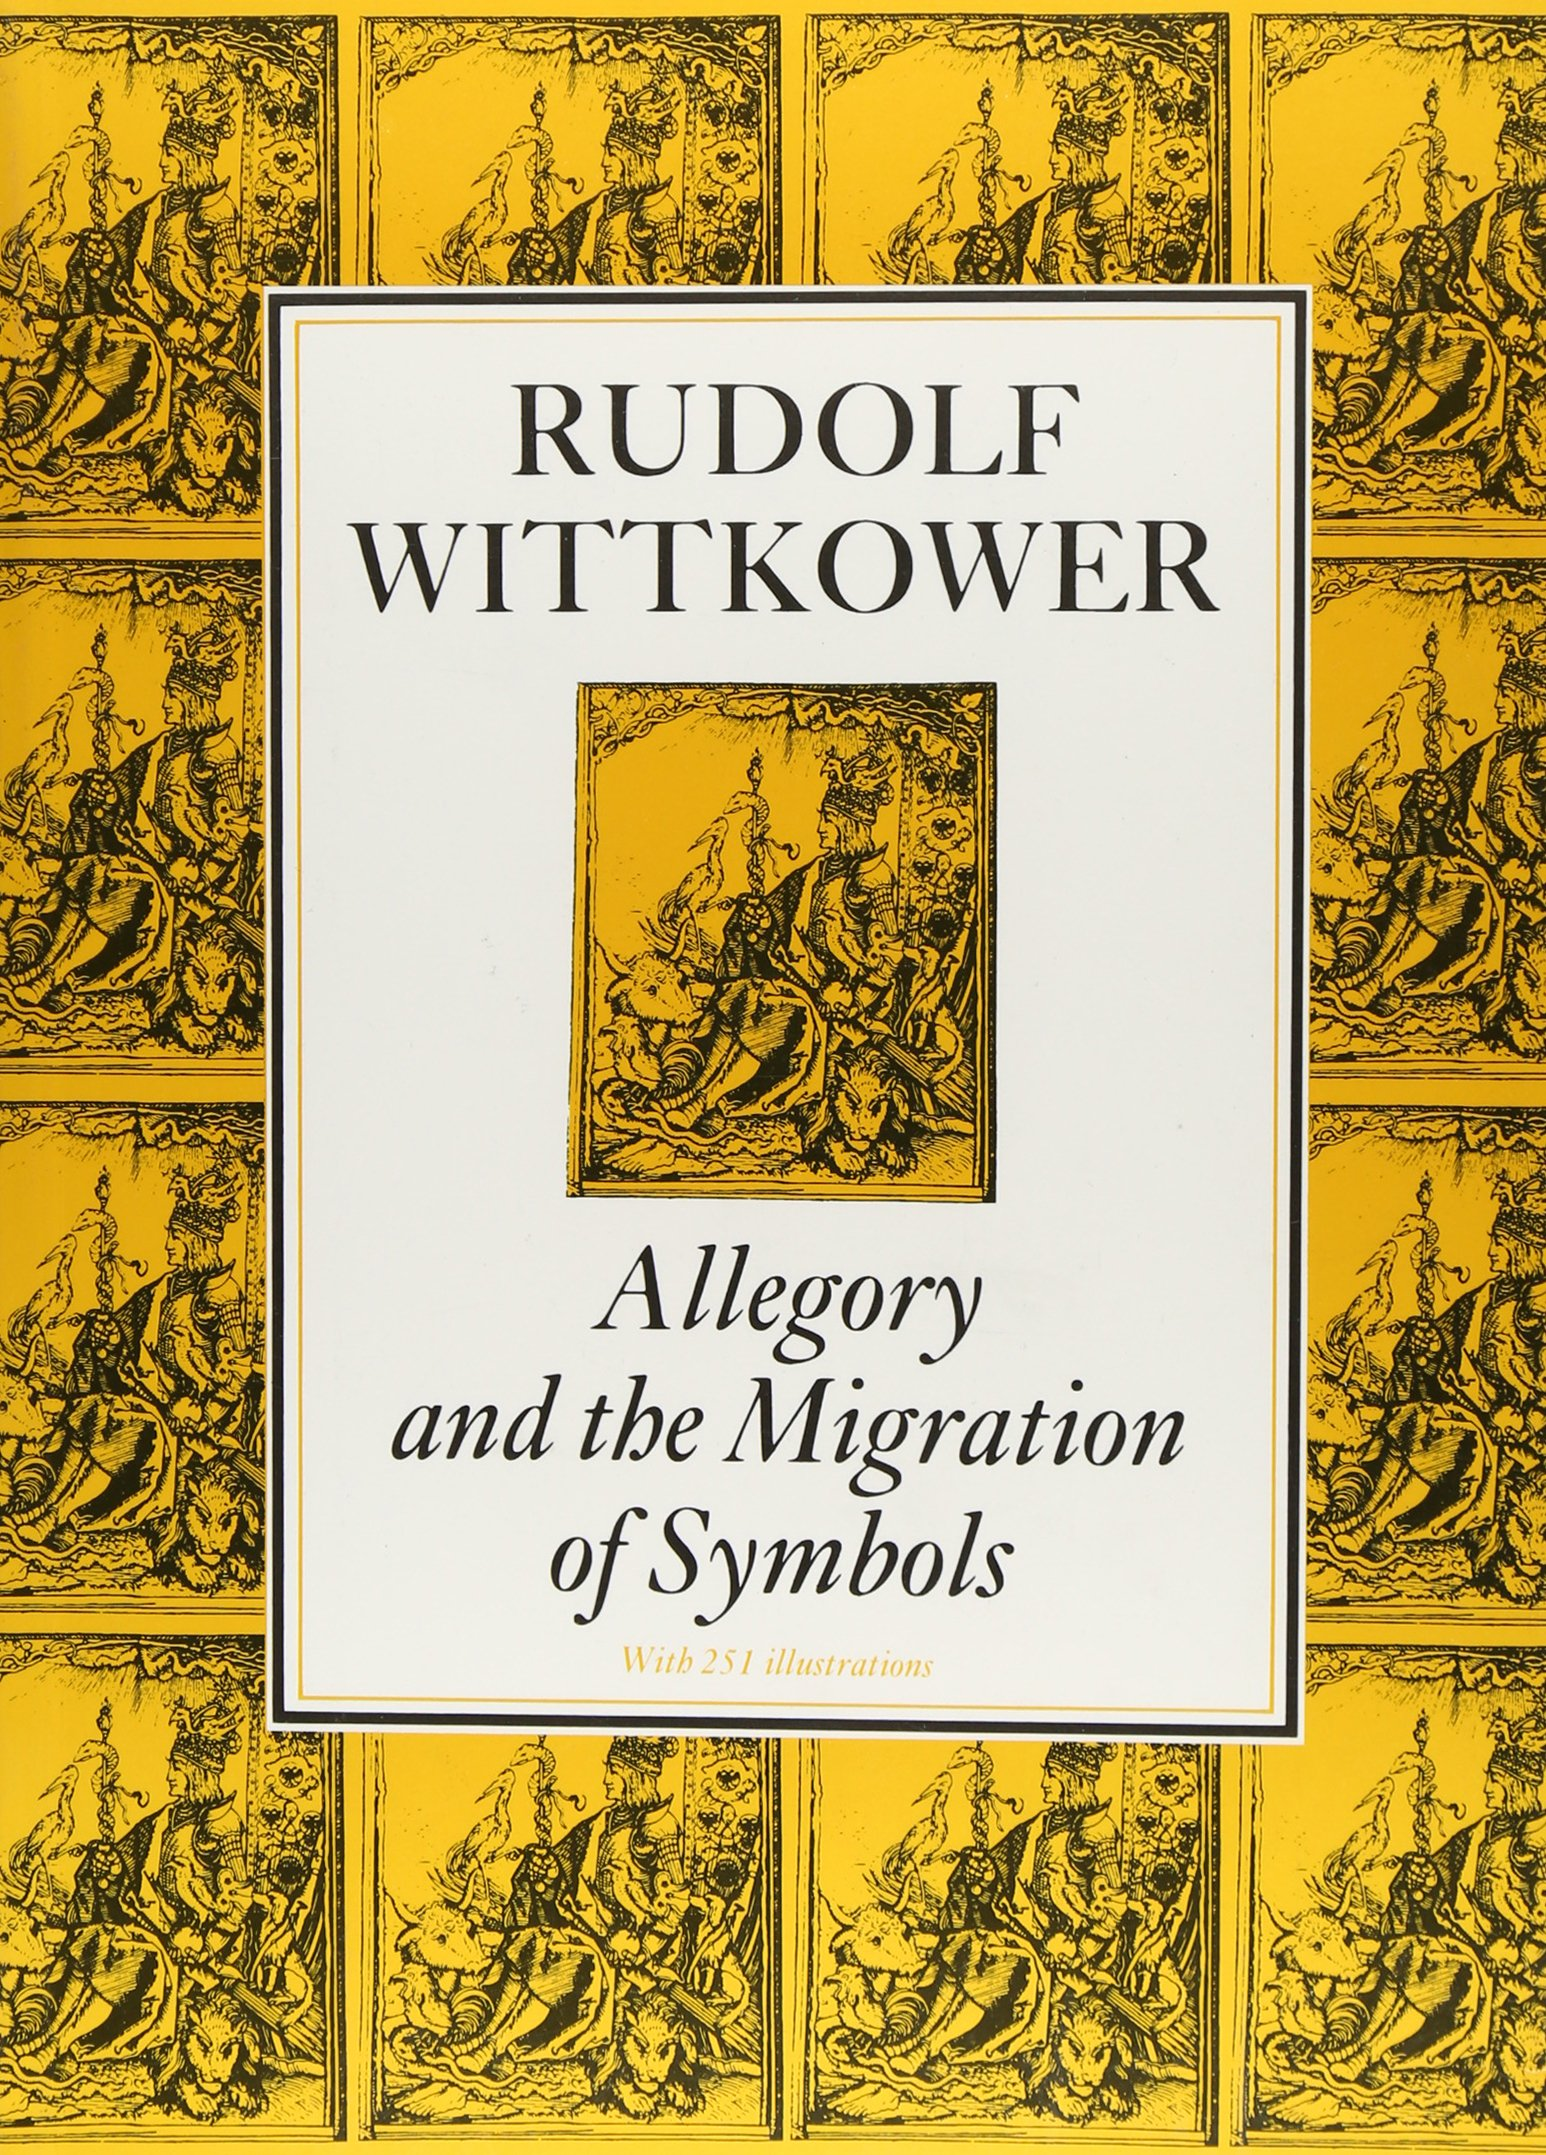 essays on migration oligopoly essay essay discuss how firms in  allegory and the migration of symbols collected essays of rudolf allegory and the migration of symbols